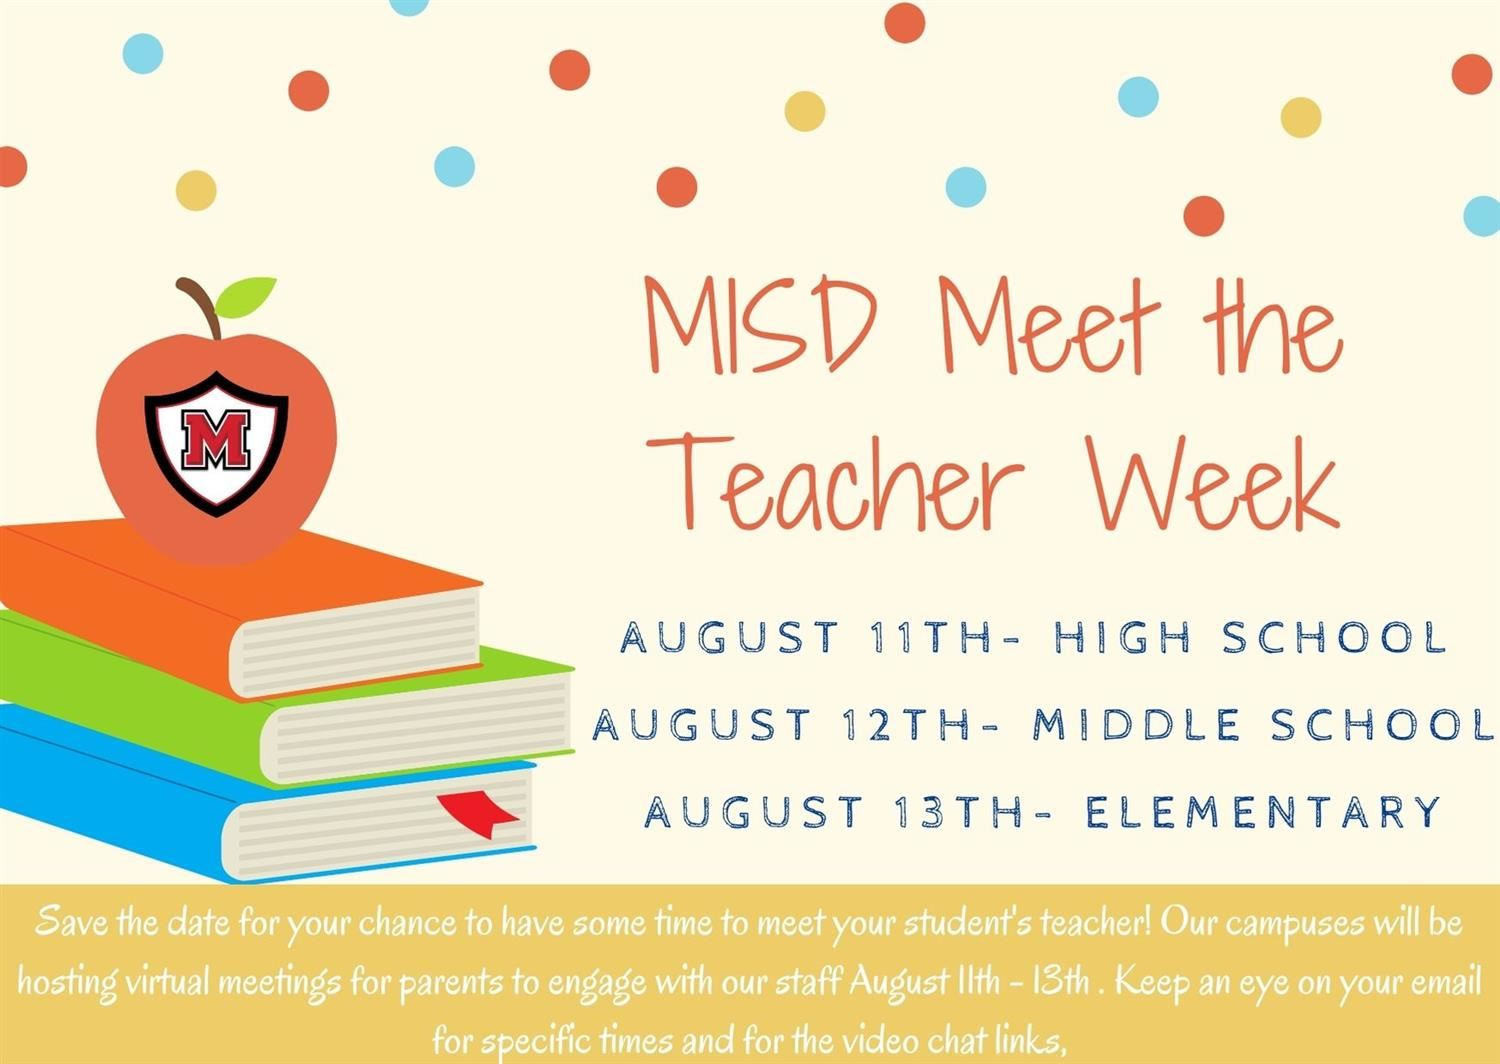 MISD Meet the Teacher Week Scheduled for August 11-13